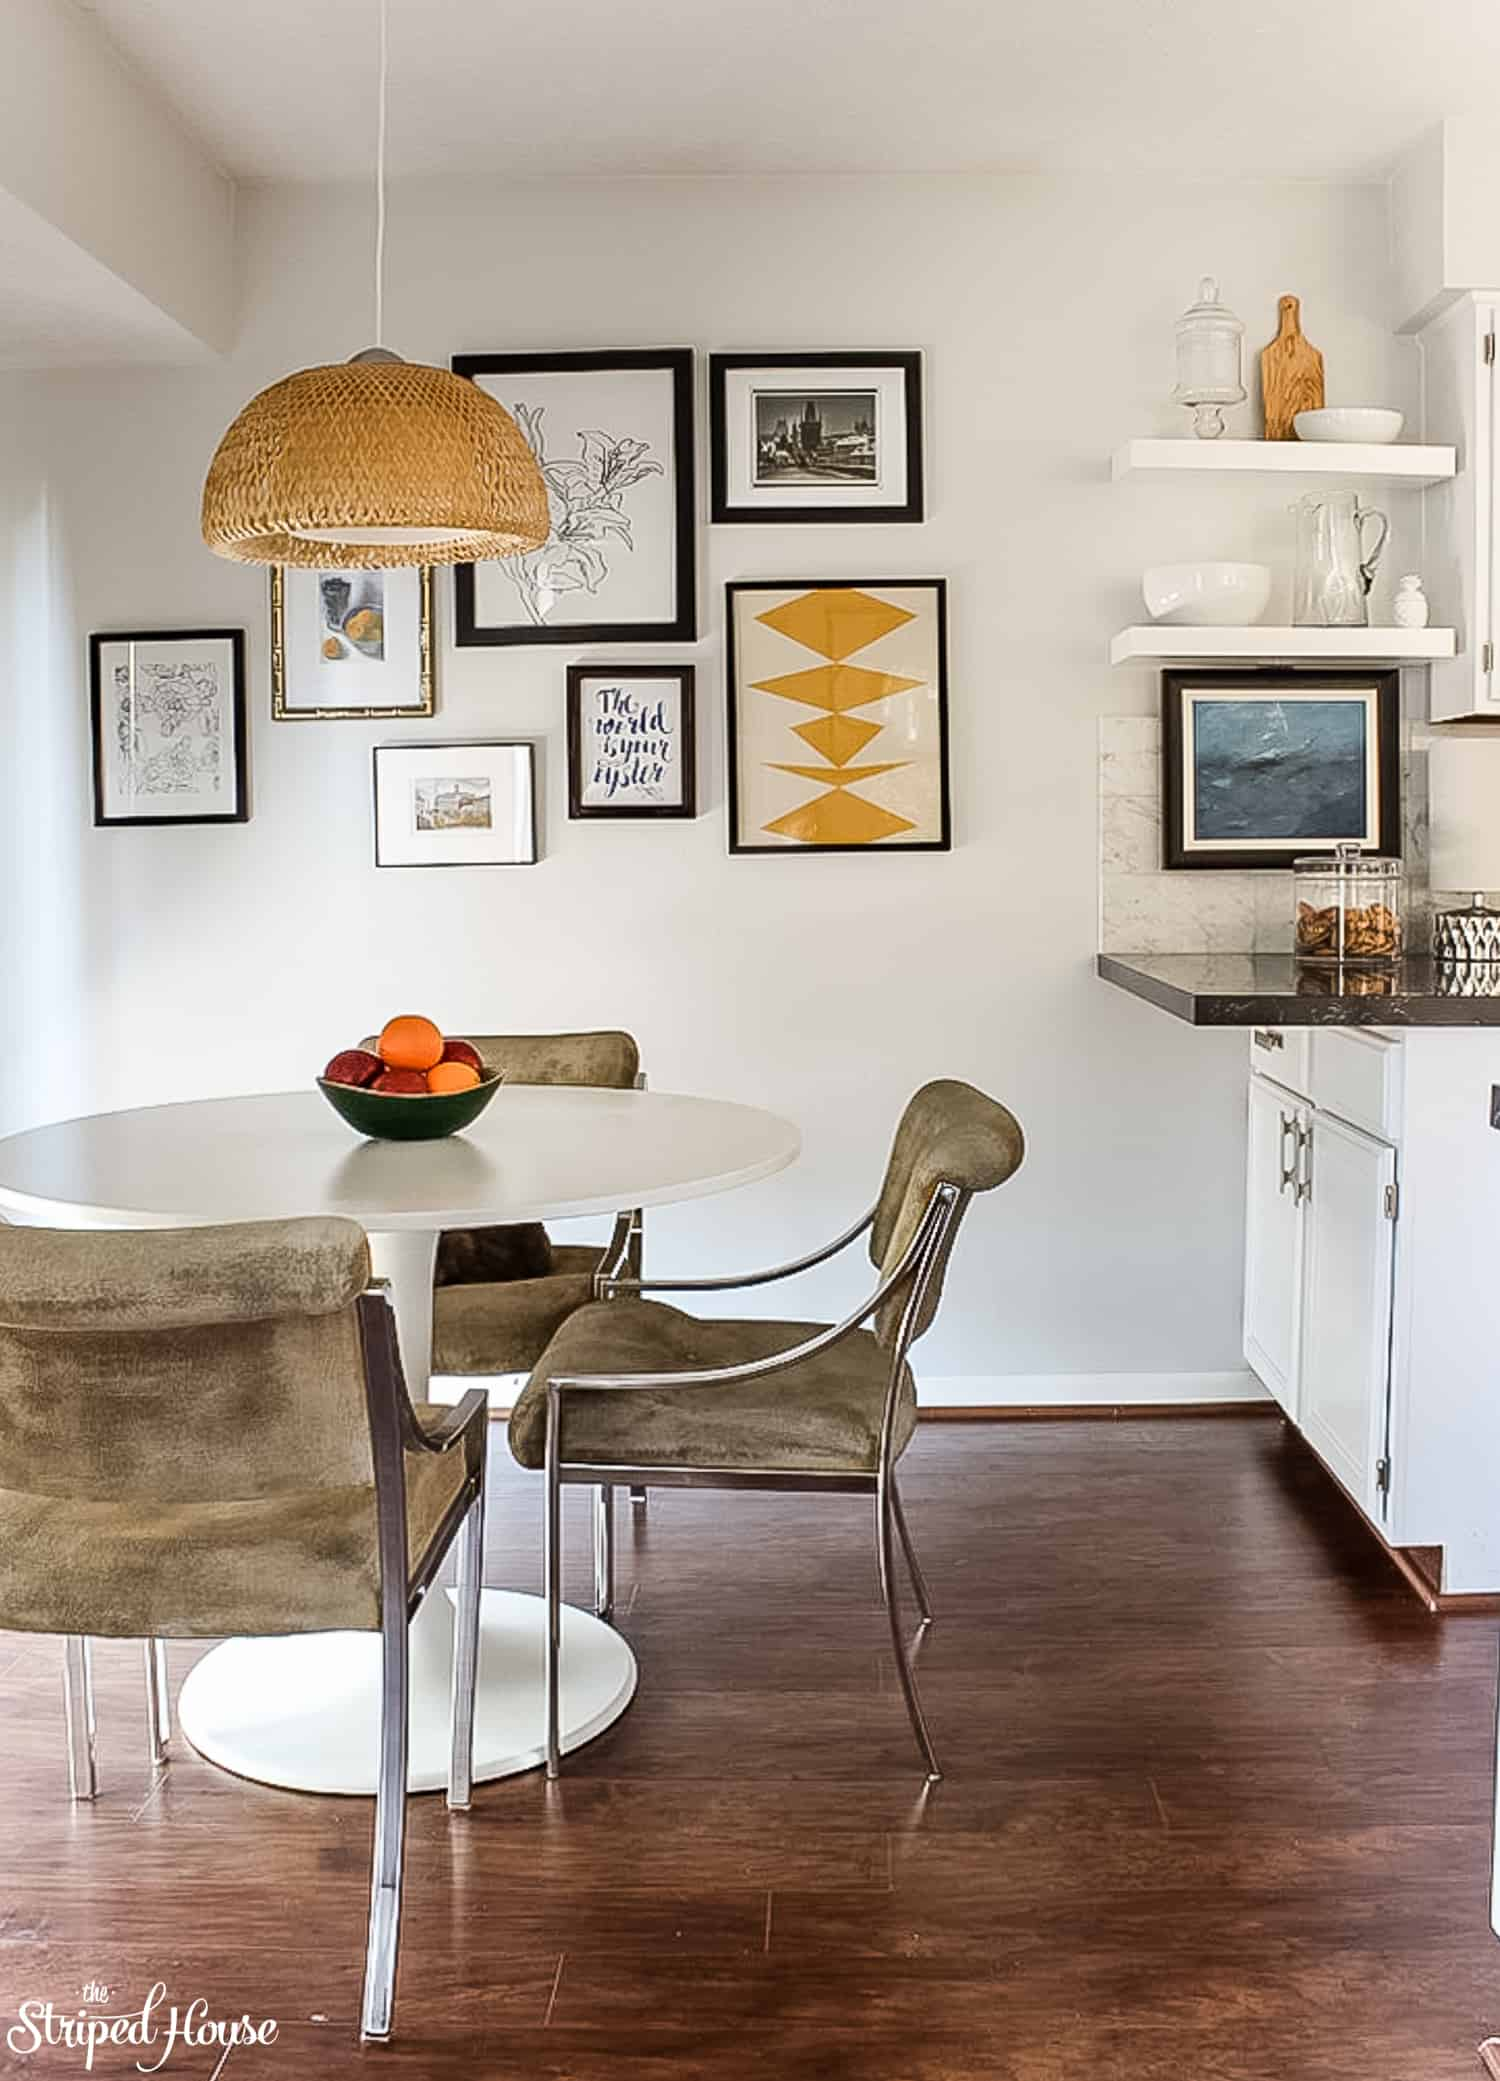 In six short weeks, I DIY'ed the eating area of my black and white traditional, but contemporary, kitchen.